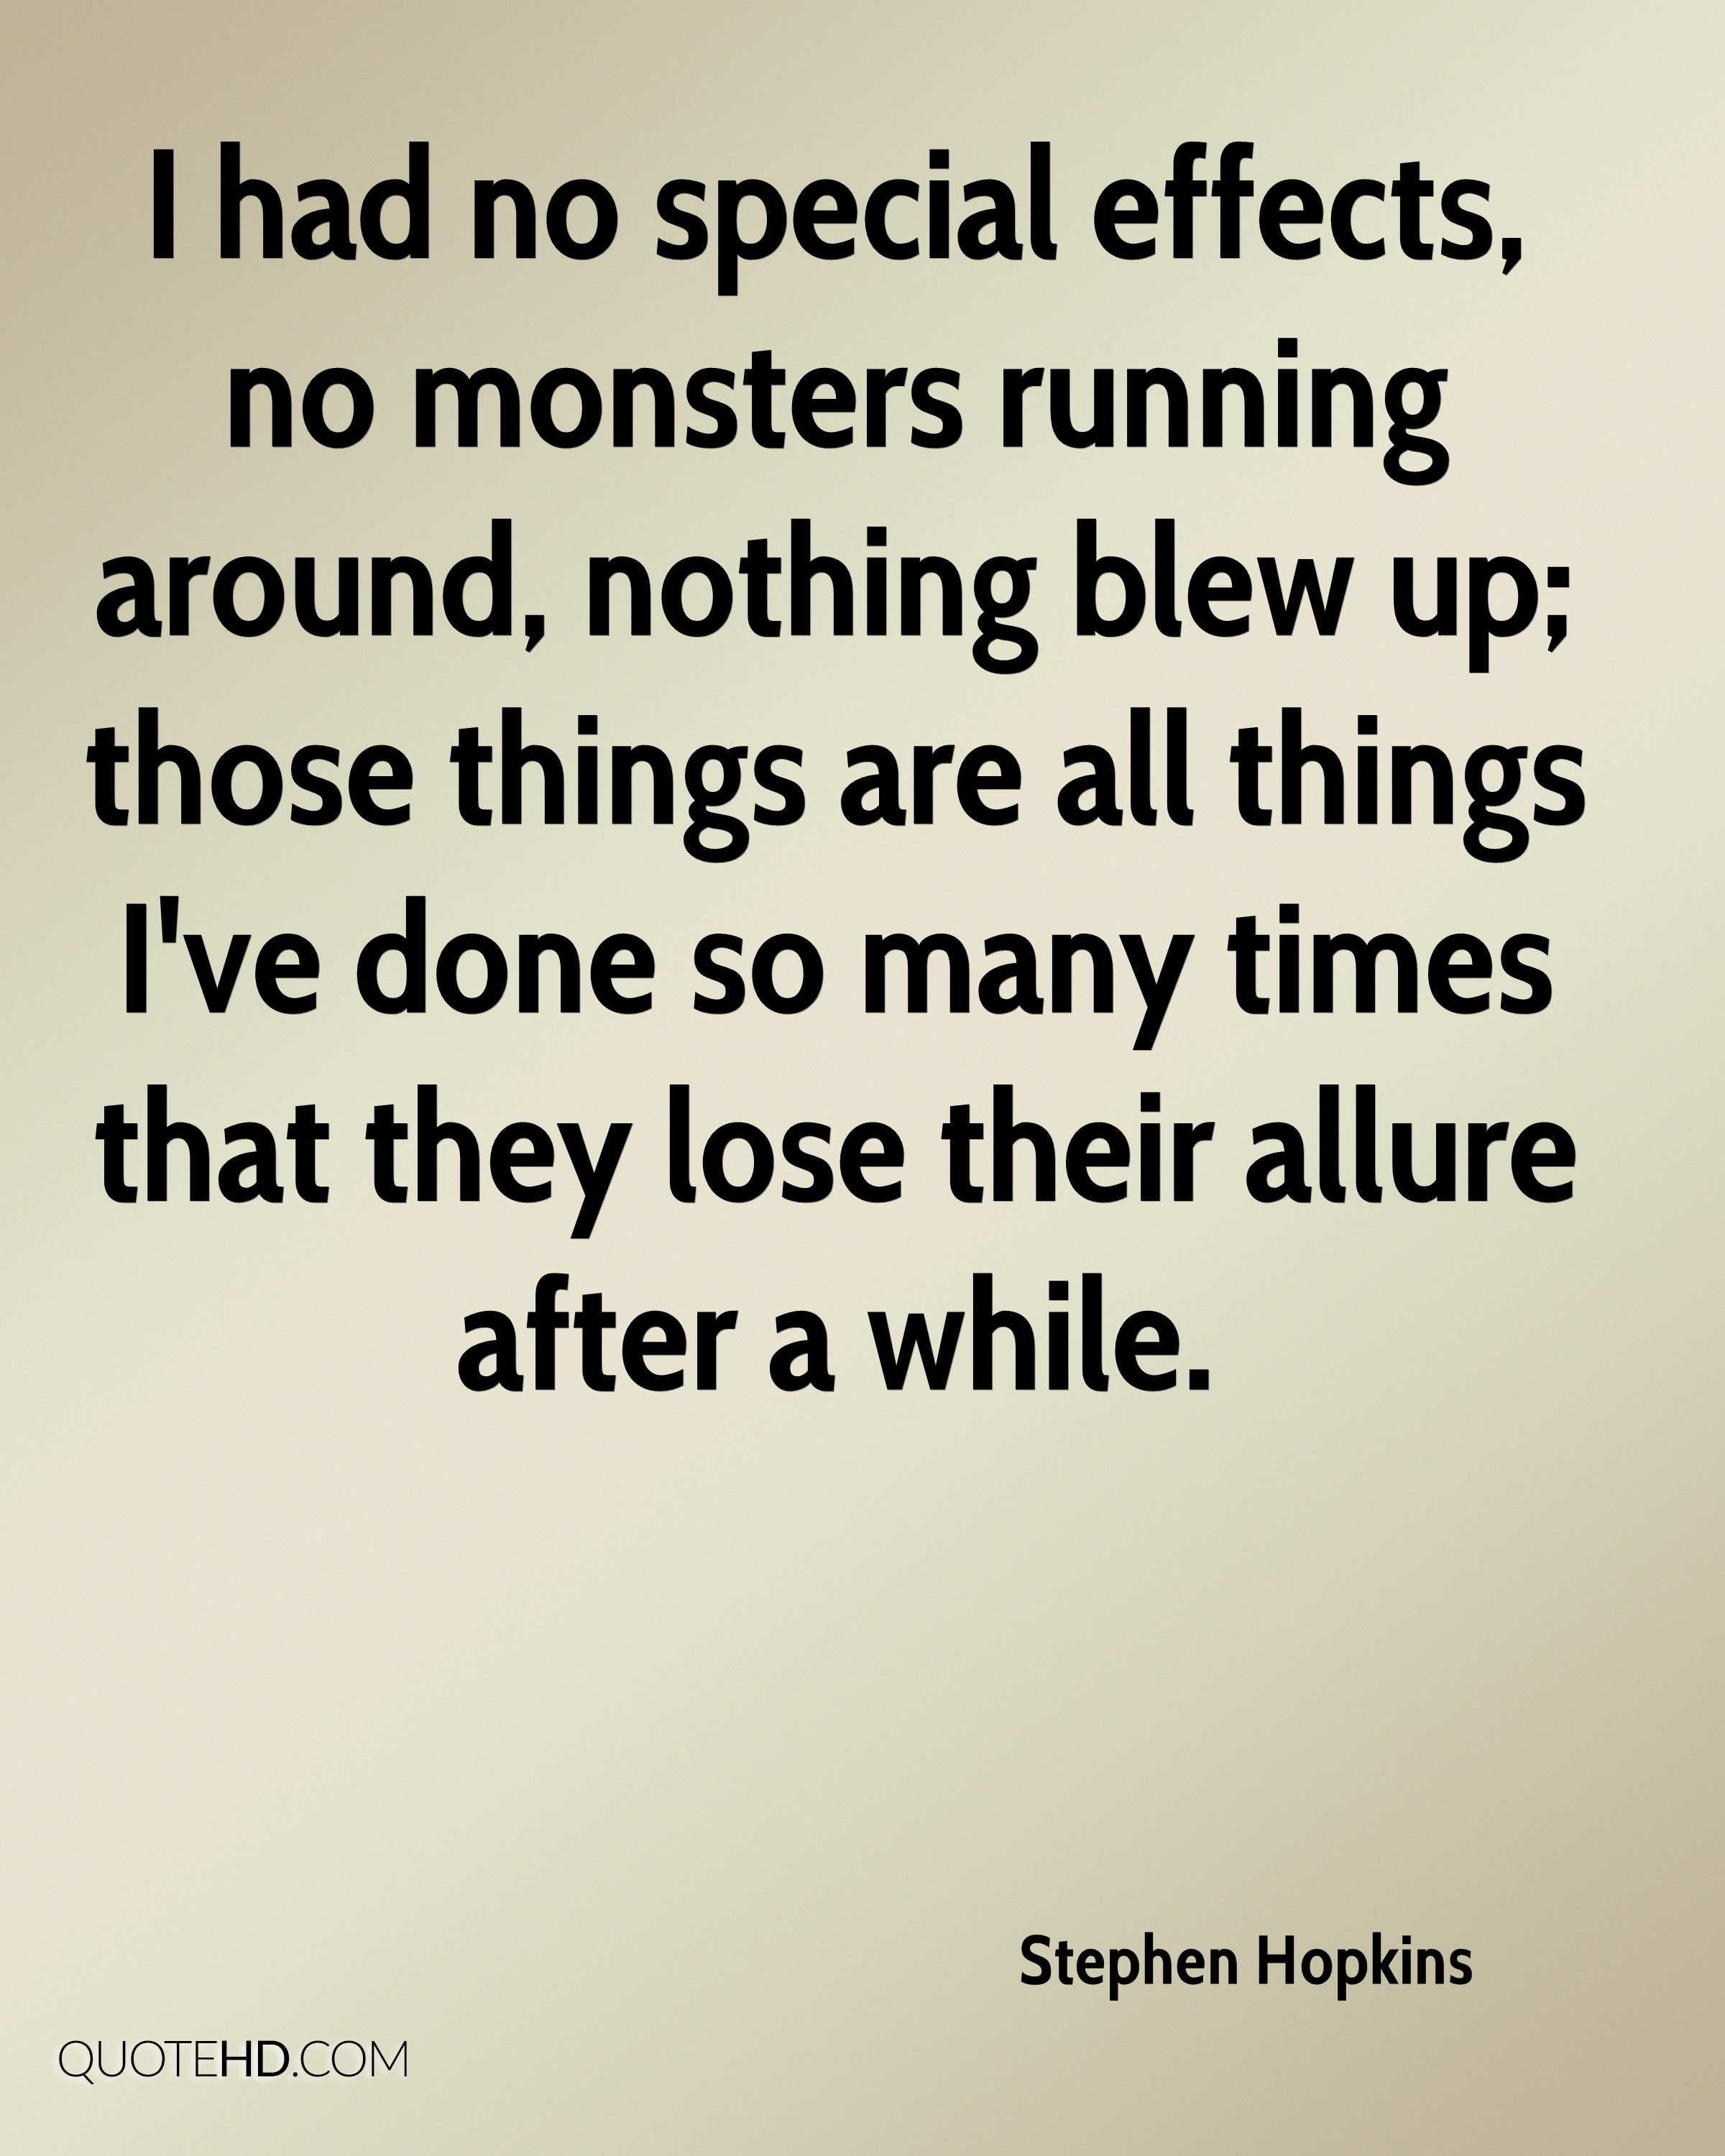 I had no special effects, no monsters running around, nothing blew up; those things are all things I've done so many times that they lose their allure after a while.